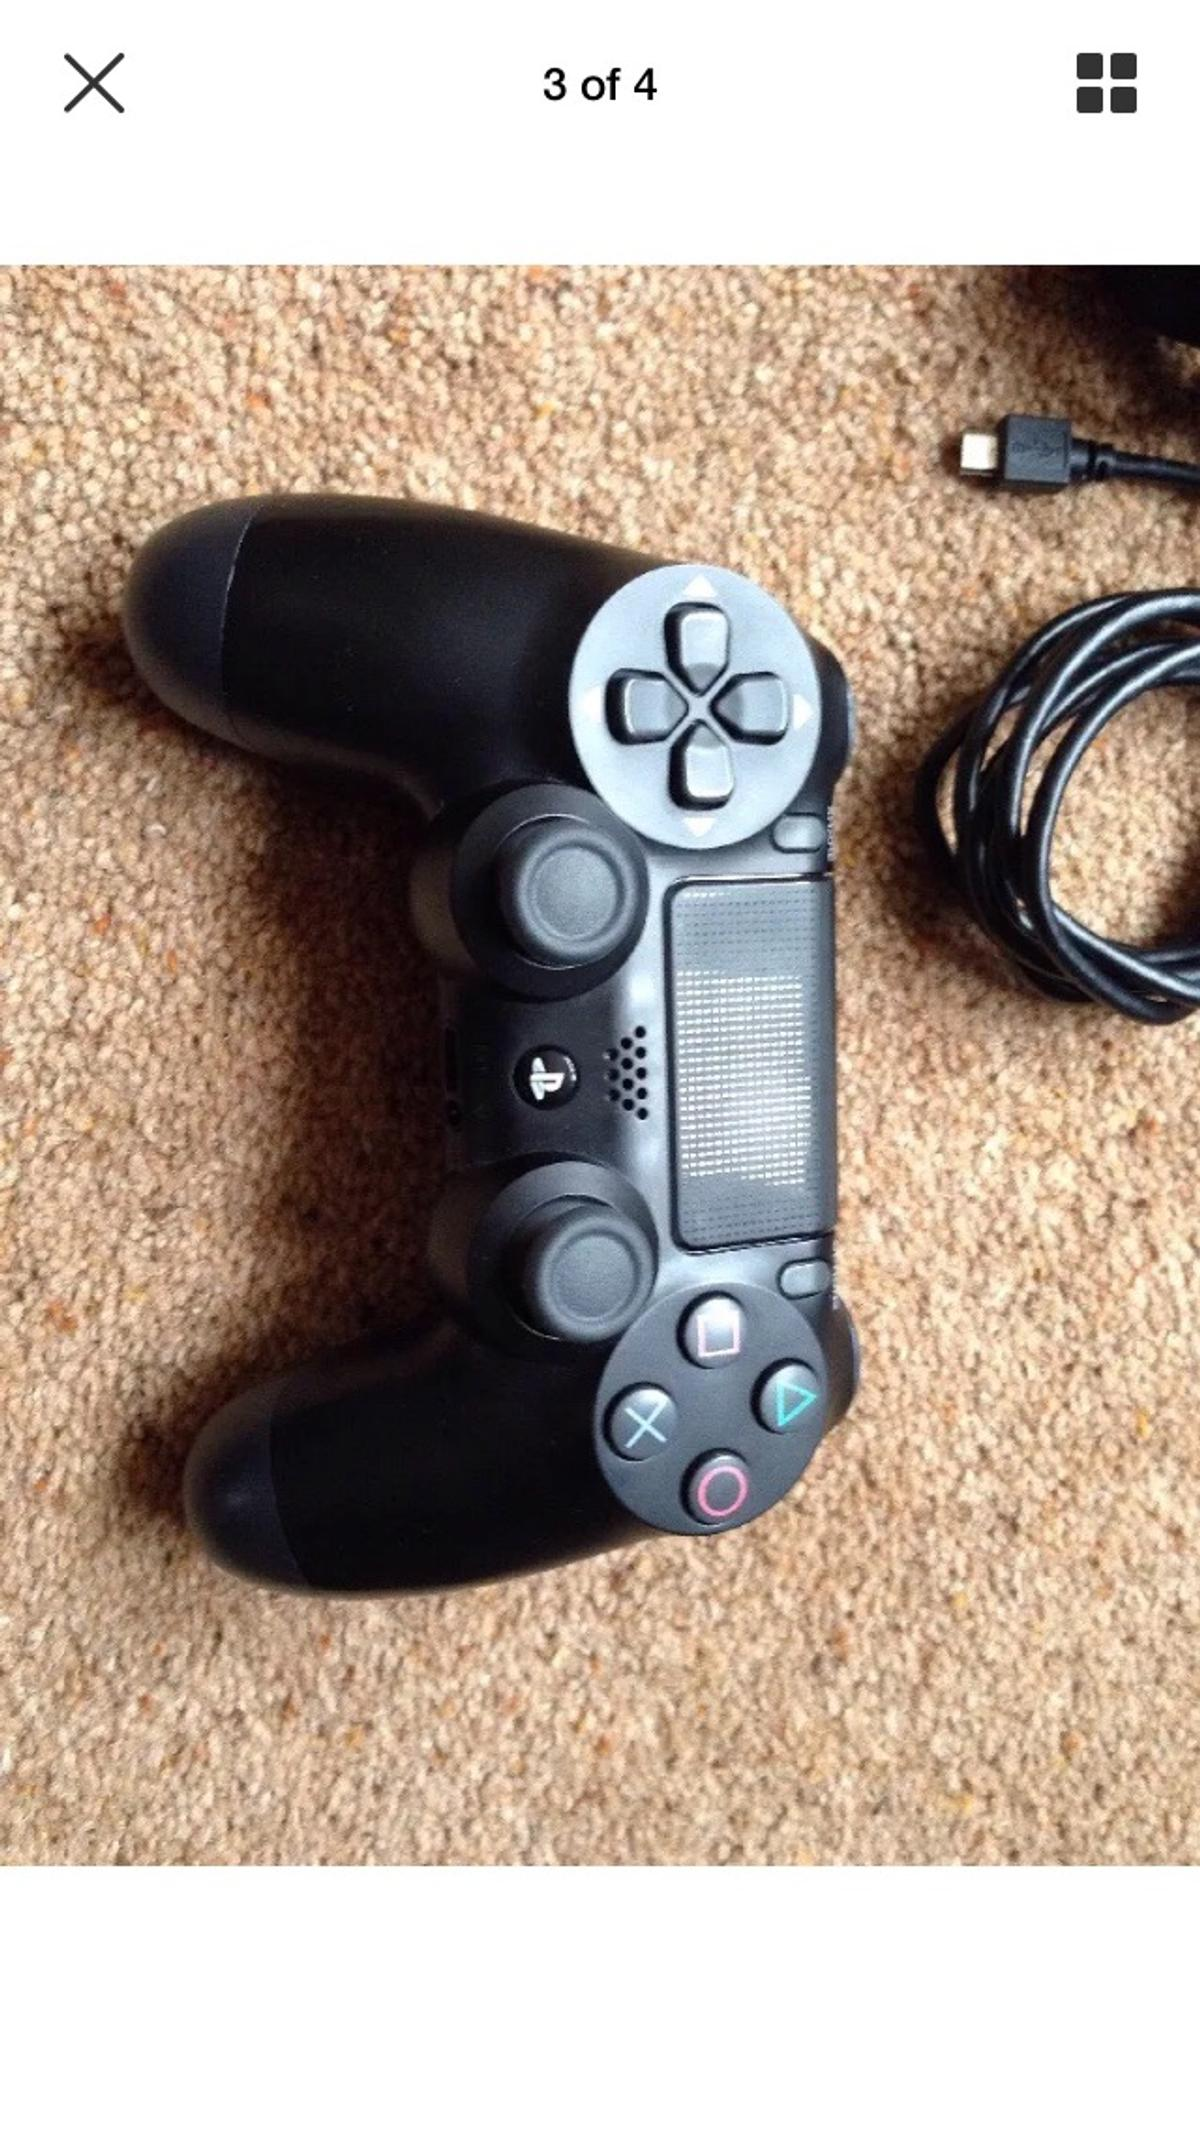 PS4 Brand New in BD3 Bradford for £175 00 for sale - Shpock